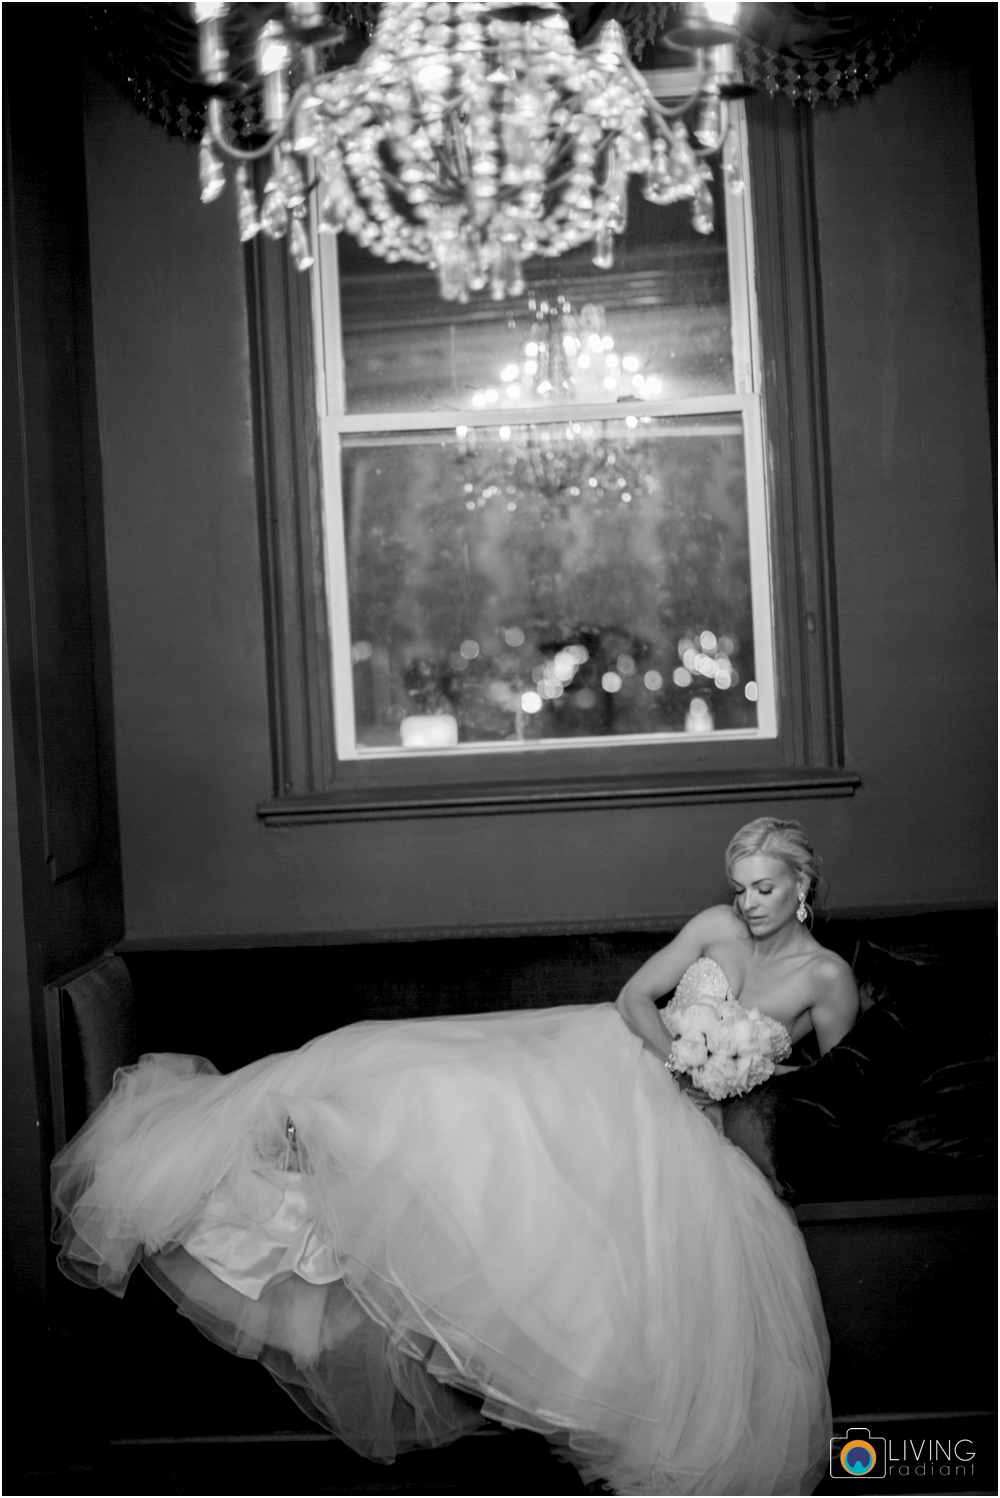 The-Belvedere-Hotel-Baltimore-Weddings-Inner-Harbor-Downtown-Living-Radiant-Photography-Ballroom-Wedding-Photos-Holmes-Wedding_0219.jpg